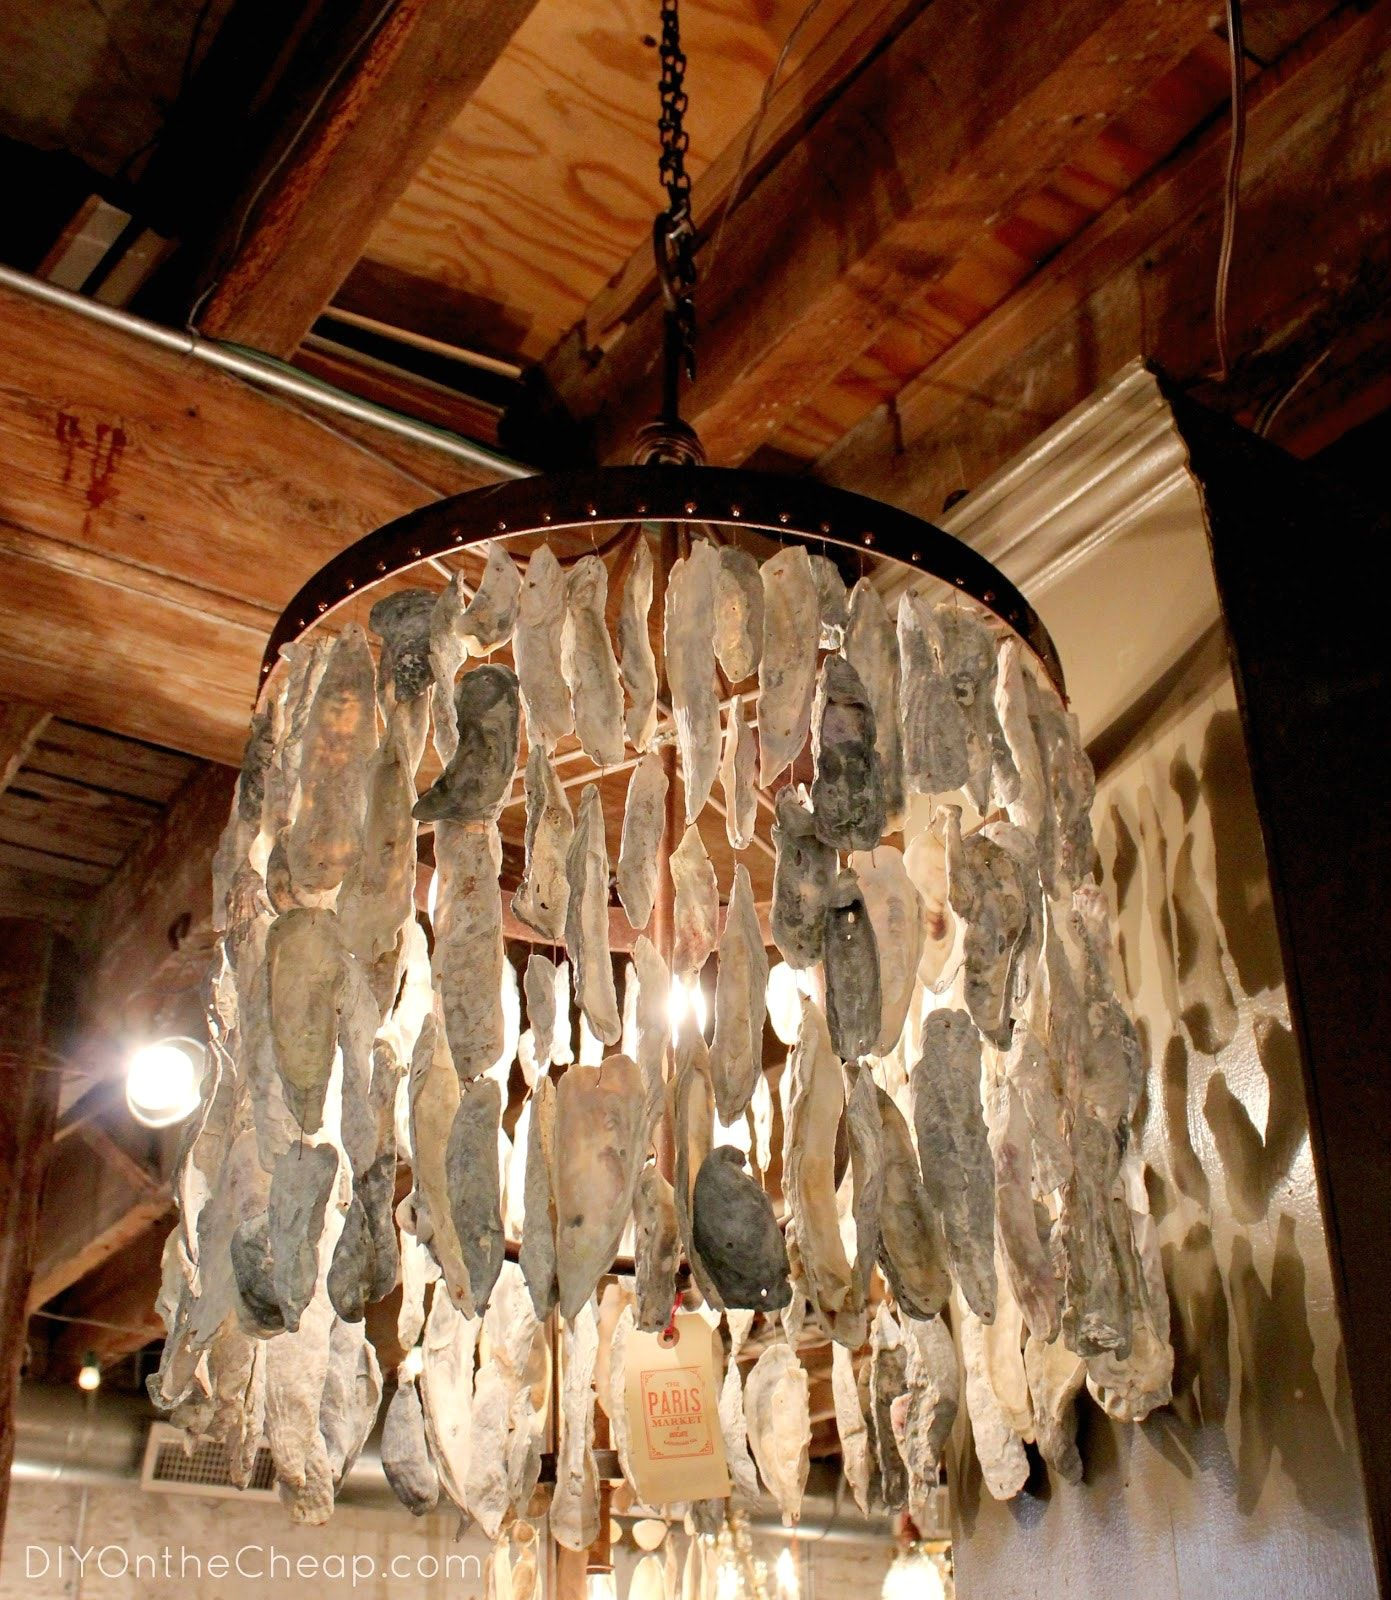 Diy Oyster Shell Chandelier And Lighting Project Week With